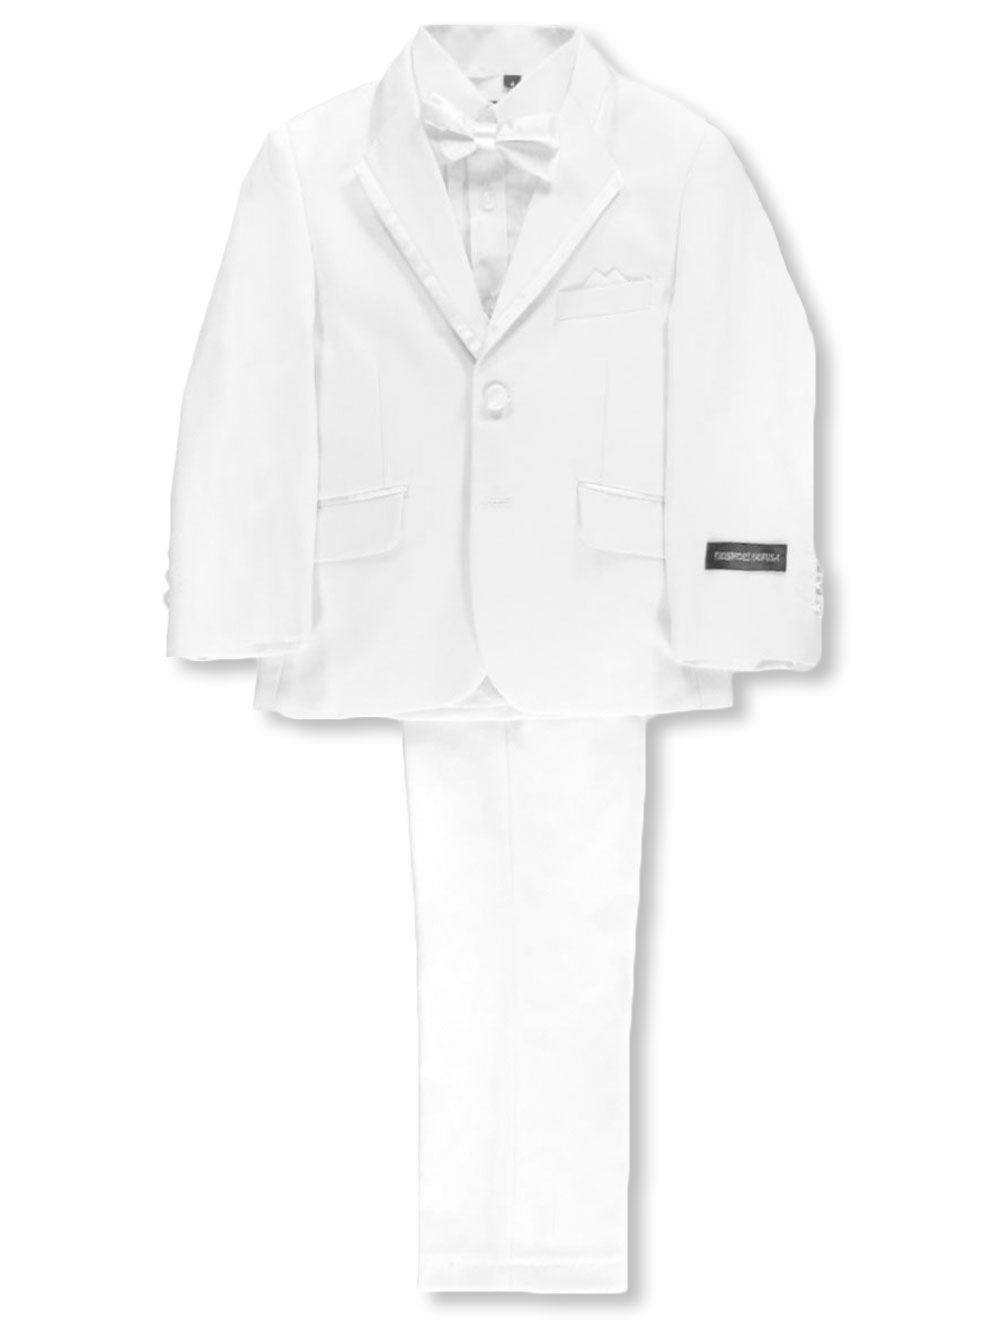 78583183c55 Big Boys' 5-Piece Suit by Kids World in White from Cookie's Kids